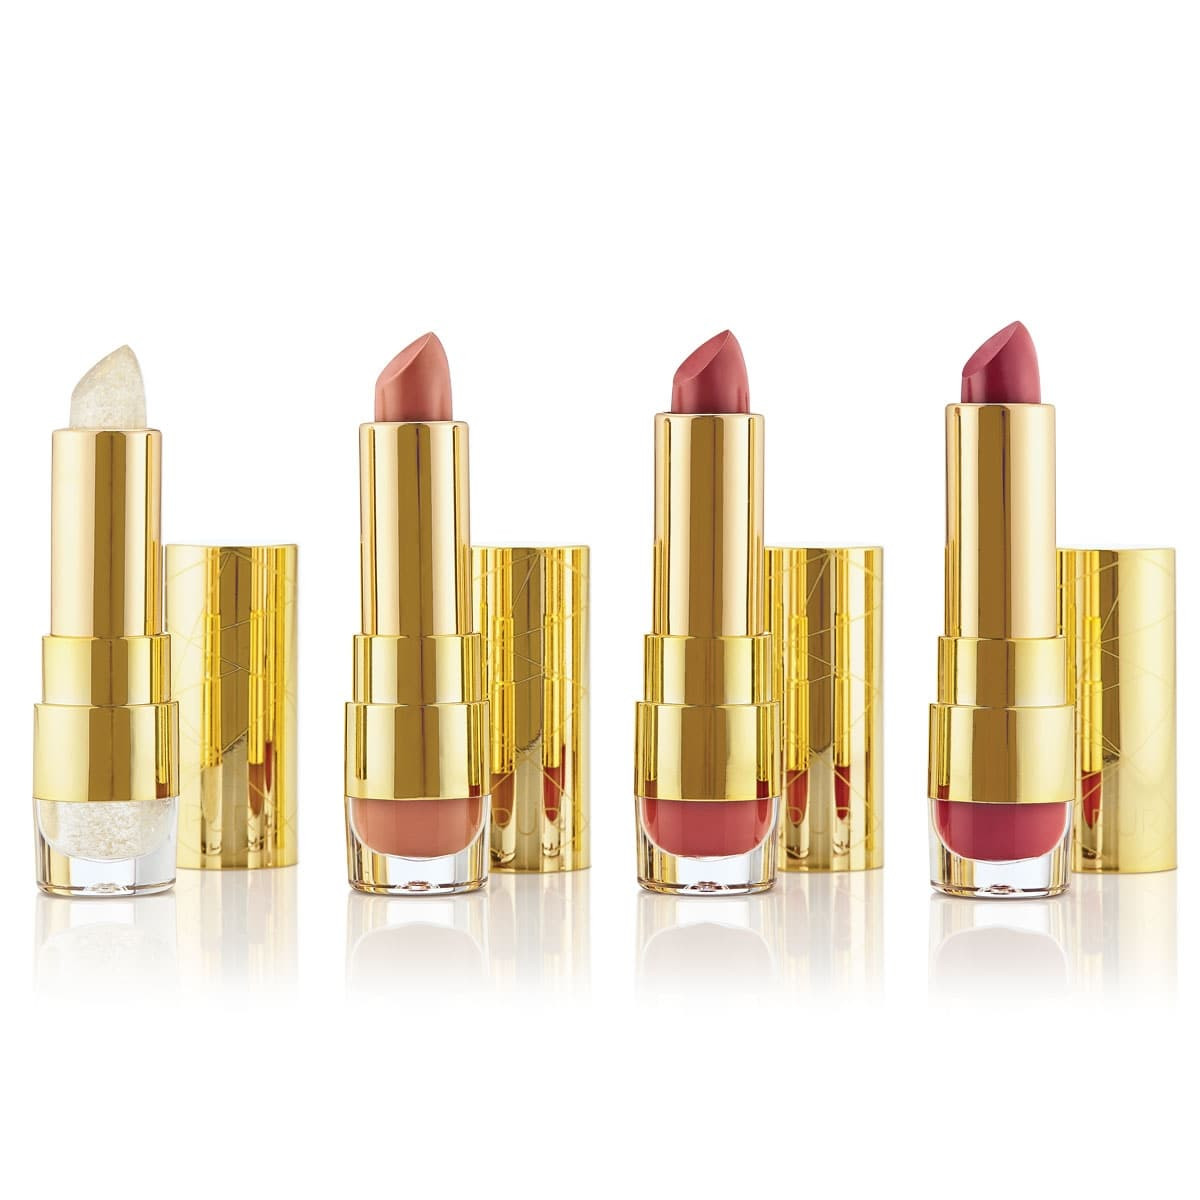 Sweet 16 Kiss of Confidence Lipstick Trio + Lip Balm Set